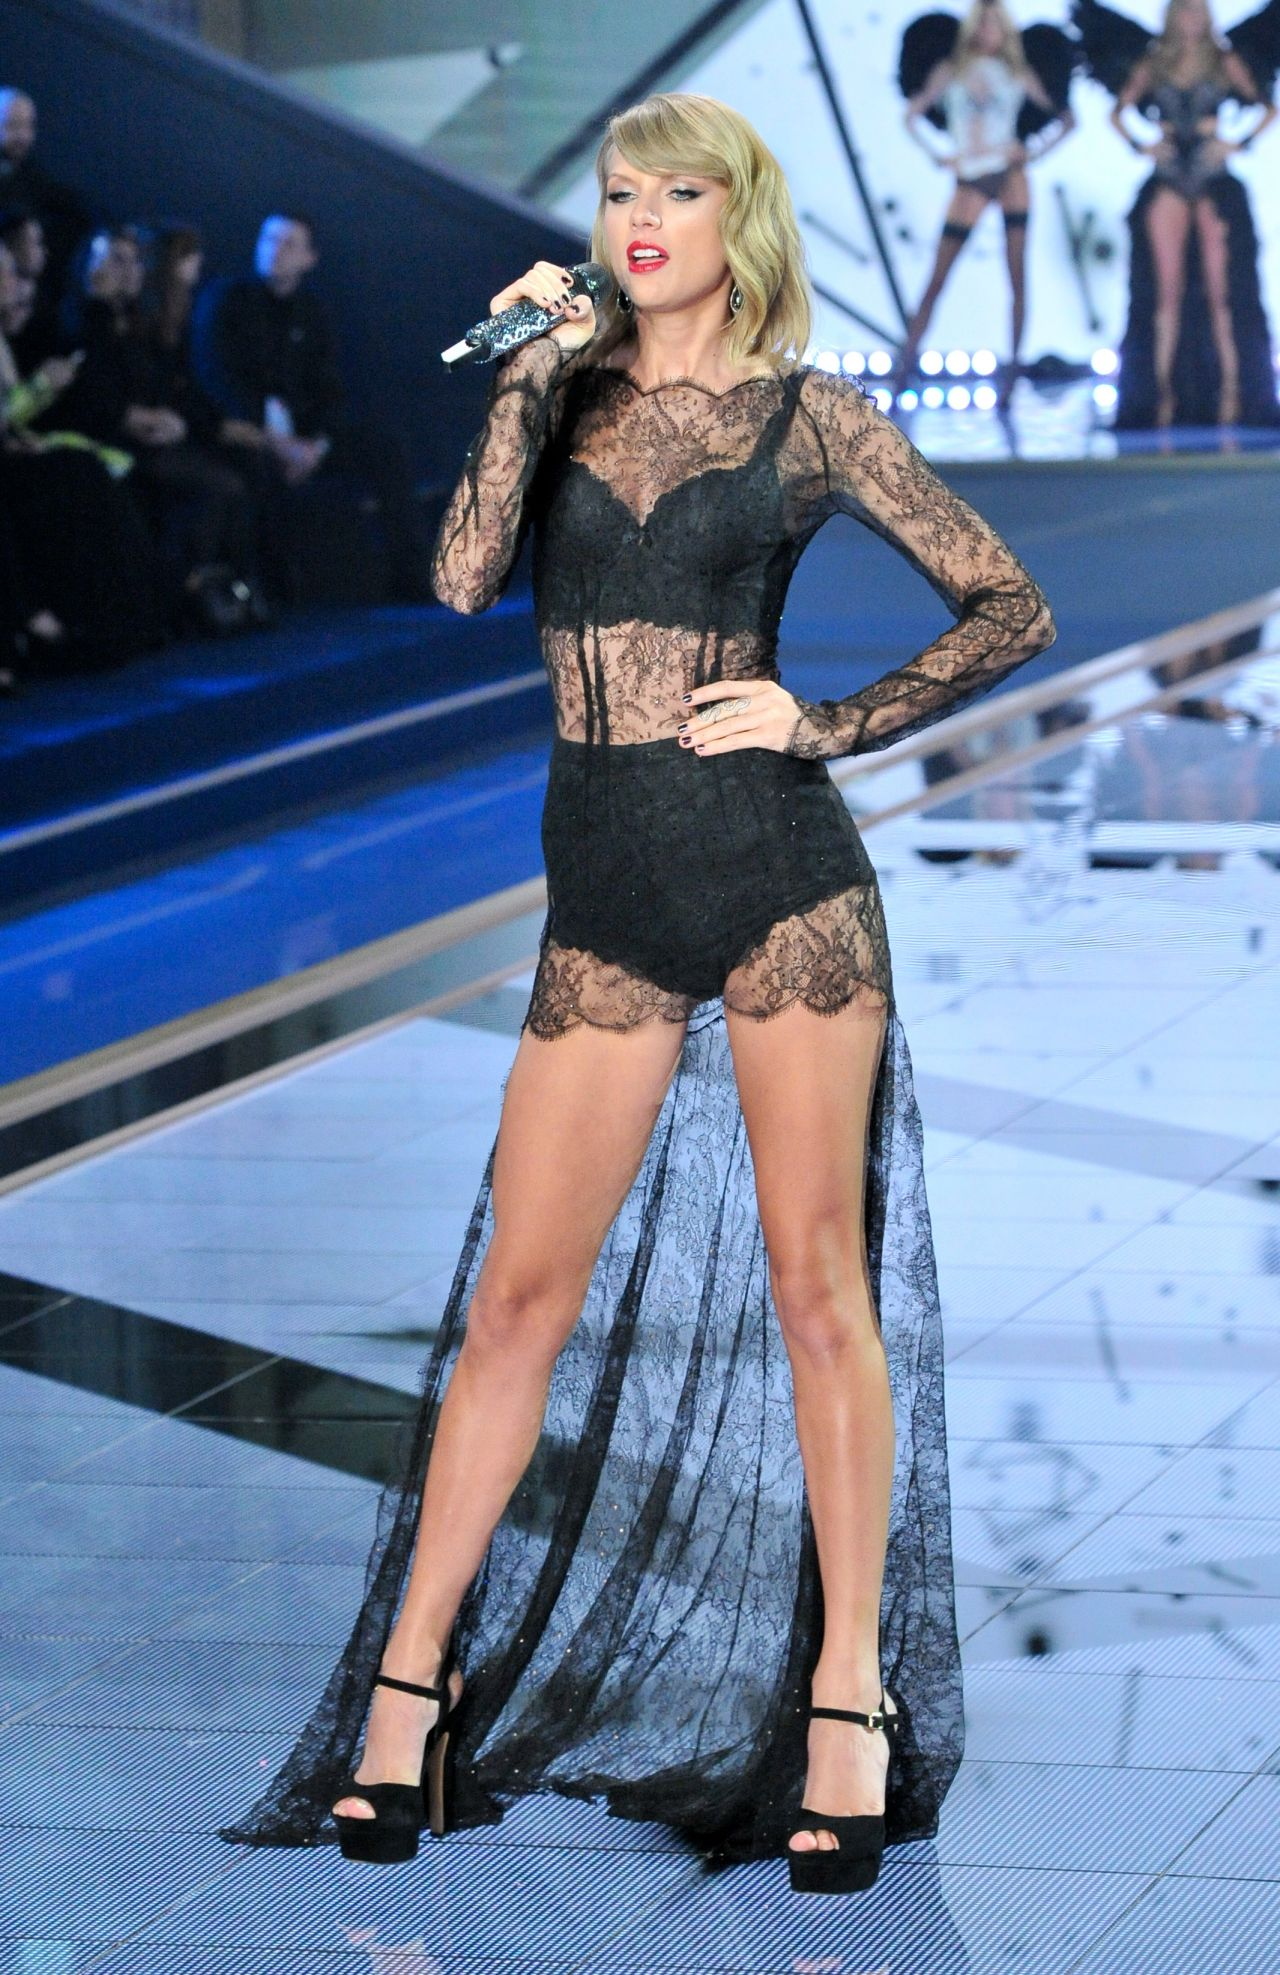 Fashion Show Victoria's Secret 2014 Taylor Swift Taylor Swift Performs at